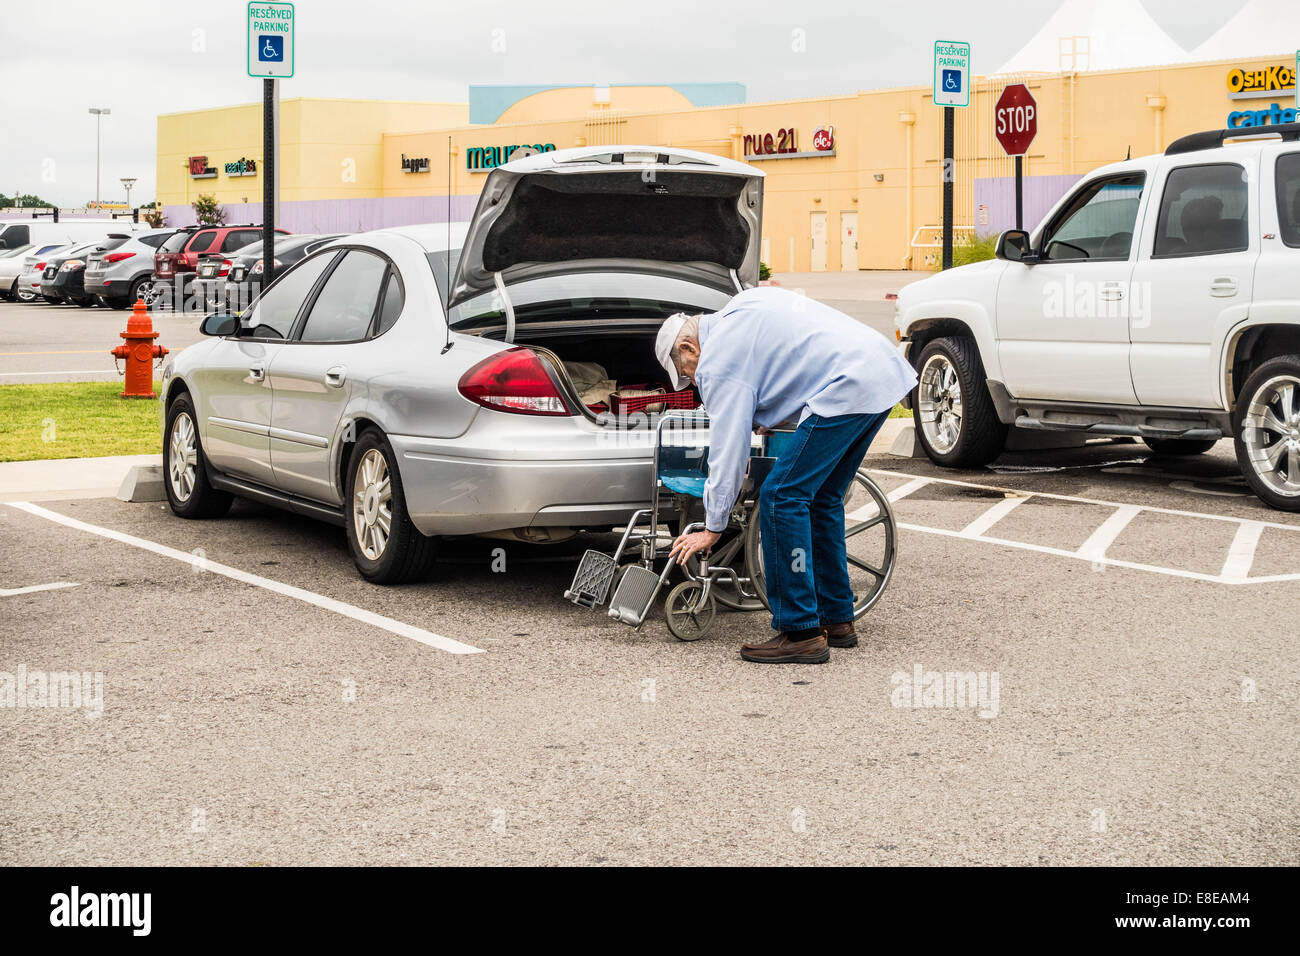 An elderly Caucasian man with white hair begins folding up a wheelchair to stow in the trunk of his car in a parking - Stock Image